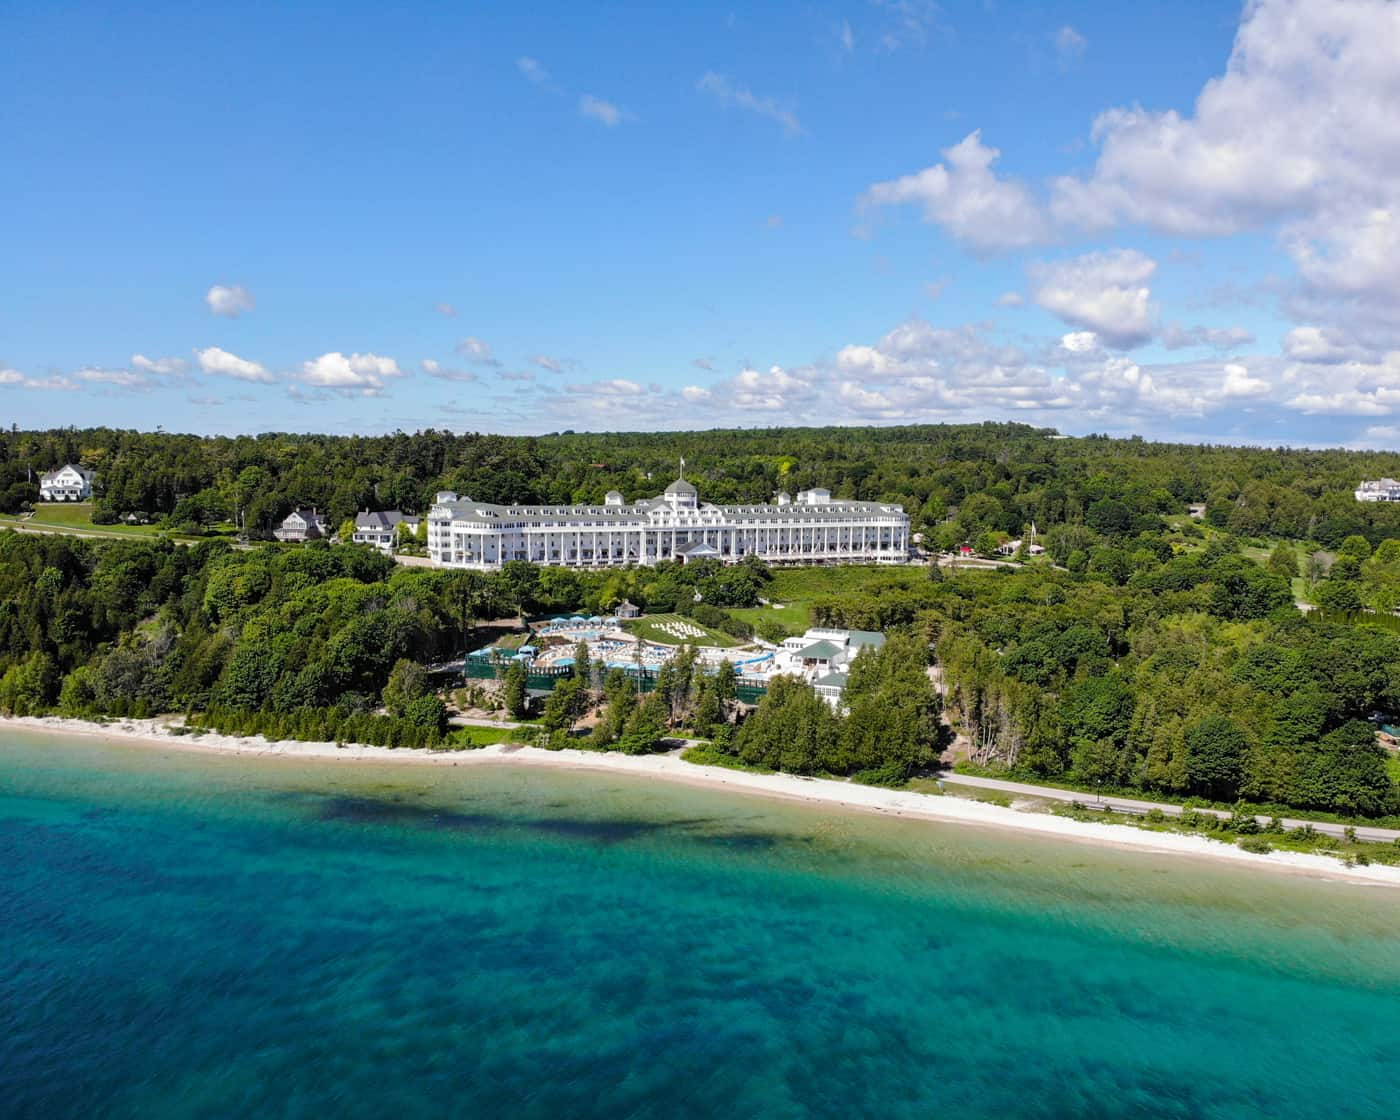 Beautiful arial view of the Grand Hotel on Mackinac Island